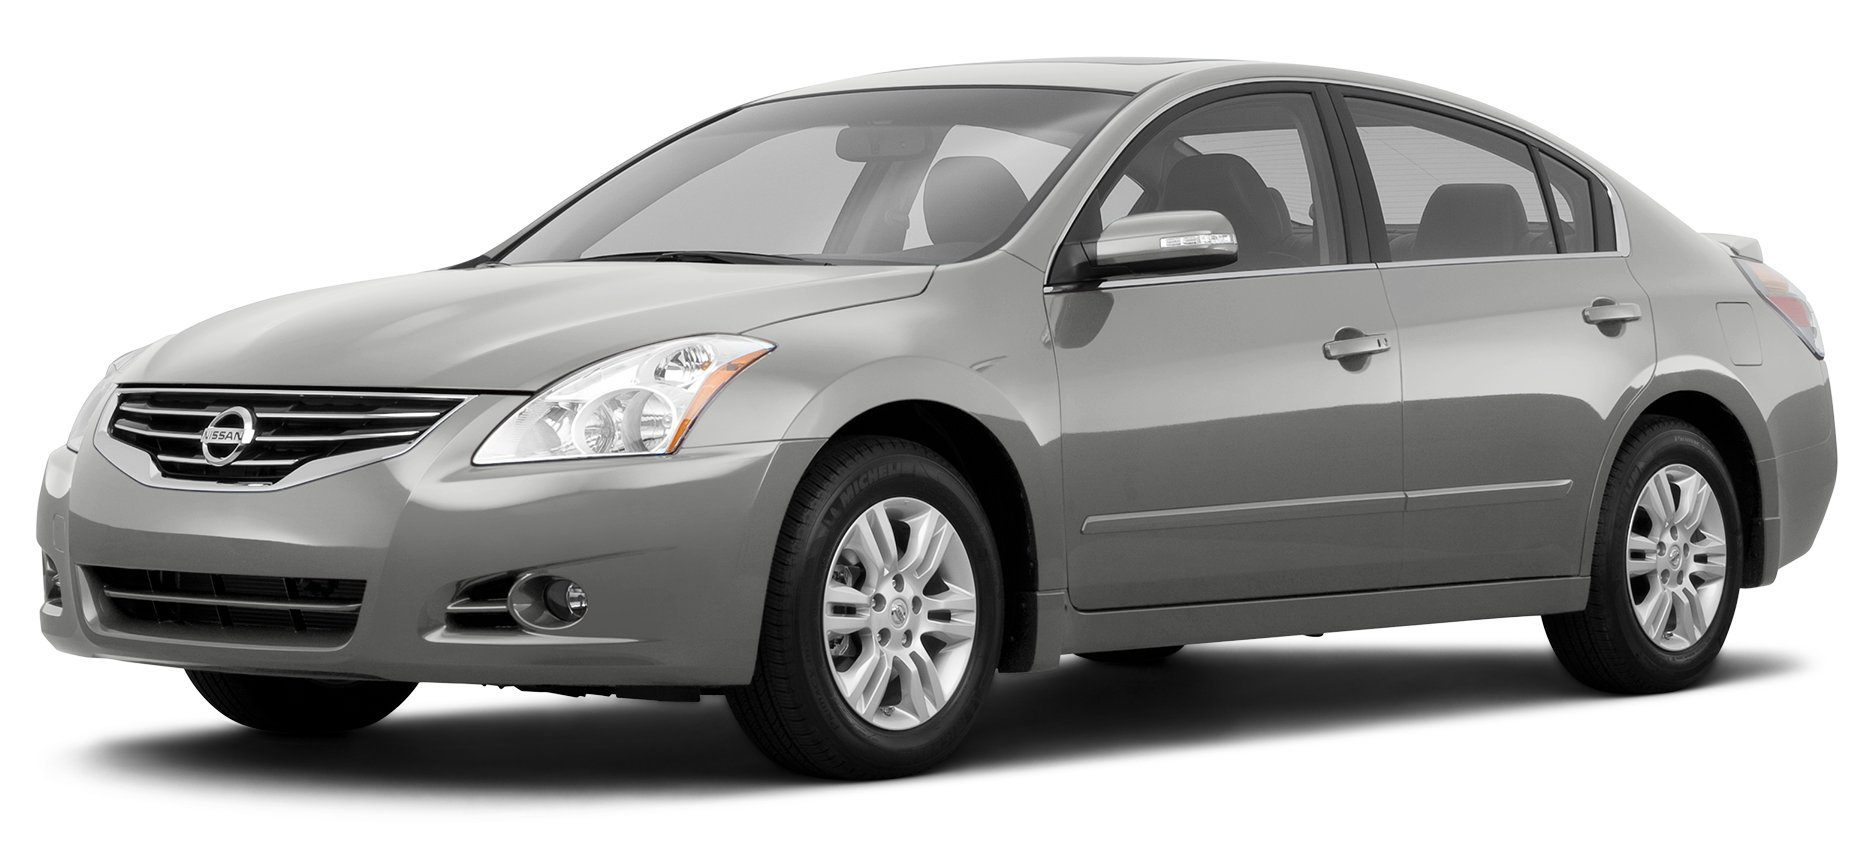 2011 nissan altima reviews images and specs vehicles. Black Bedroom Furniture Sets. Home Design Ideas